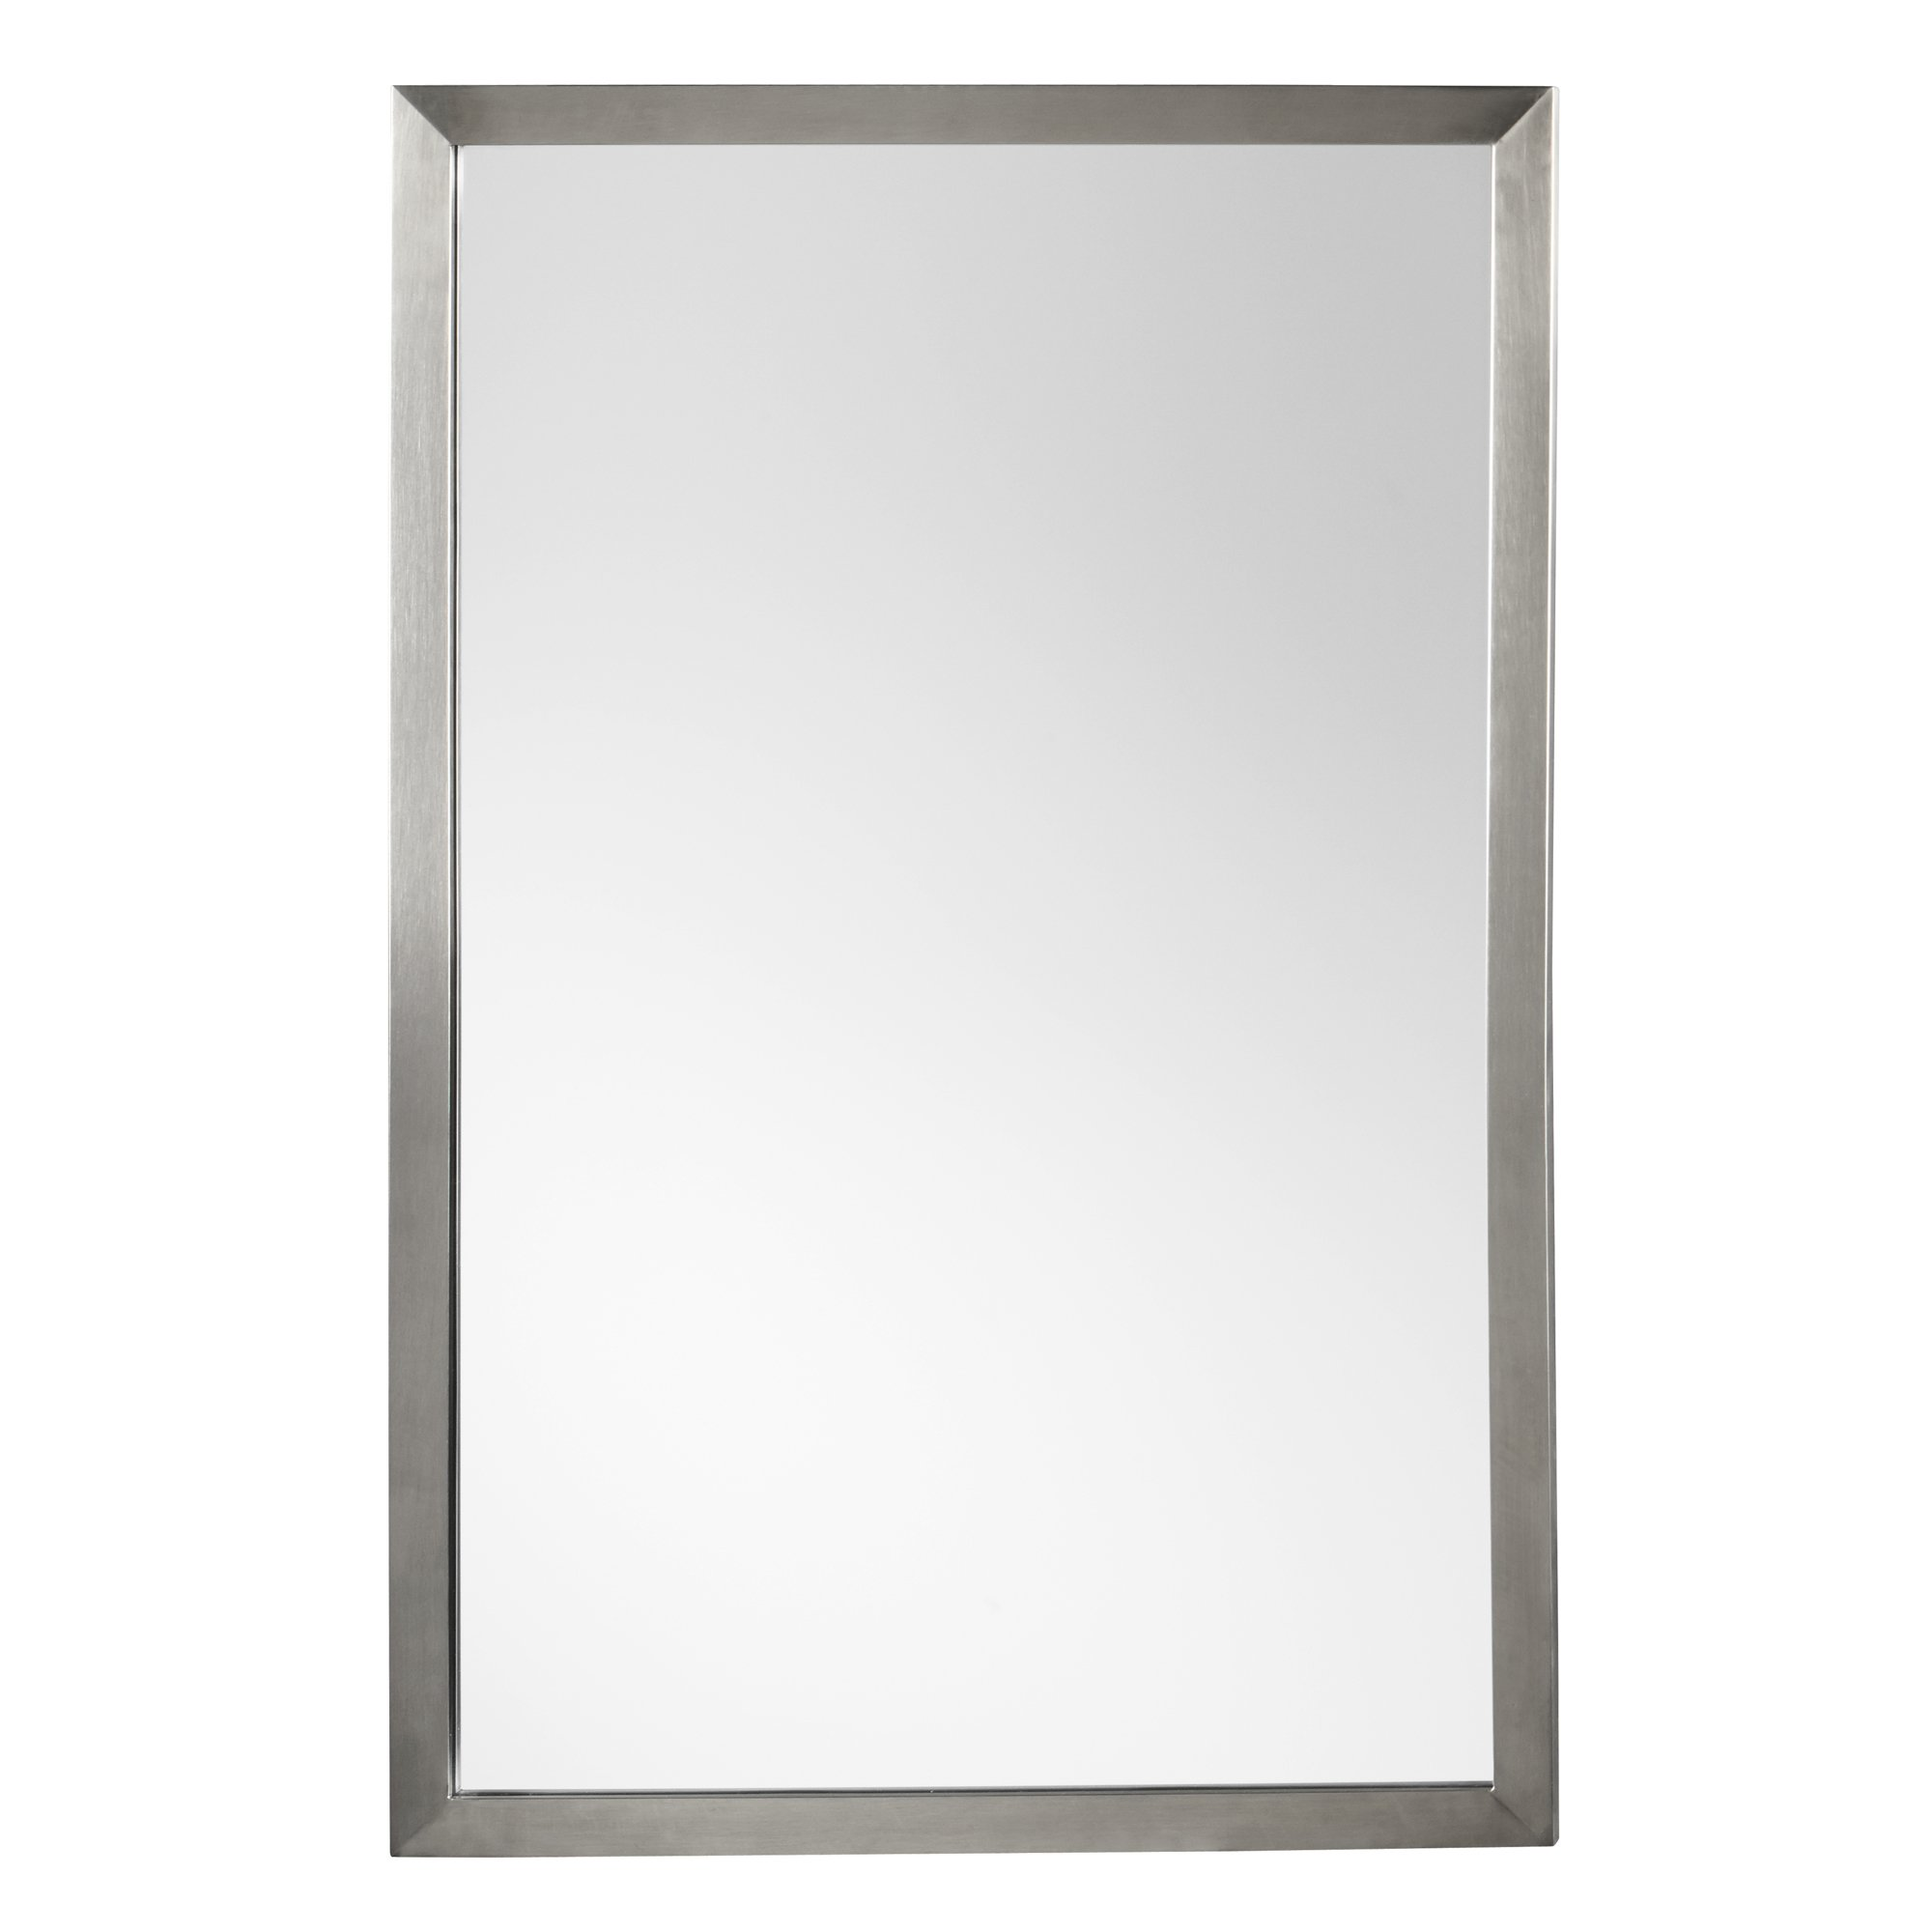 RONBOW Emile 22'' x 32'' Contemporary Metal Frame Wall Decor Bathroom Mirror in Brushed Nickel Finish 603423-BN